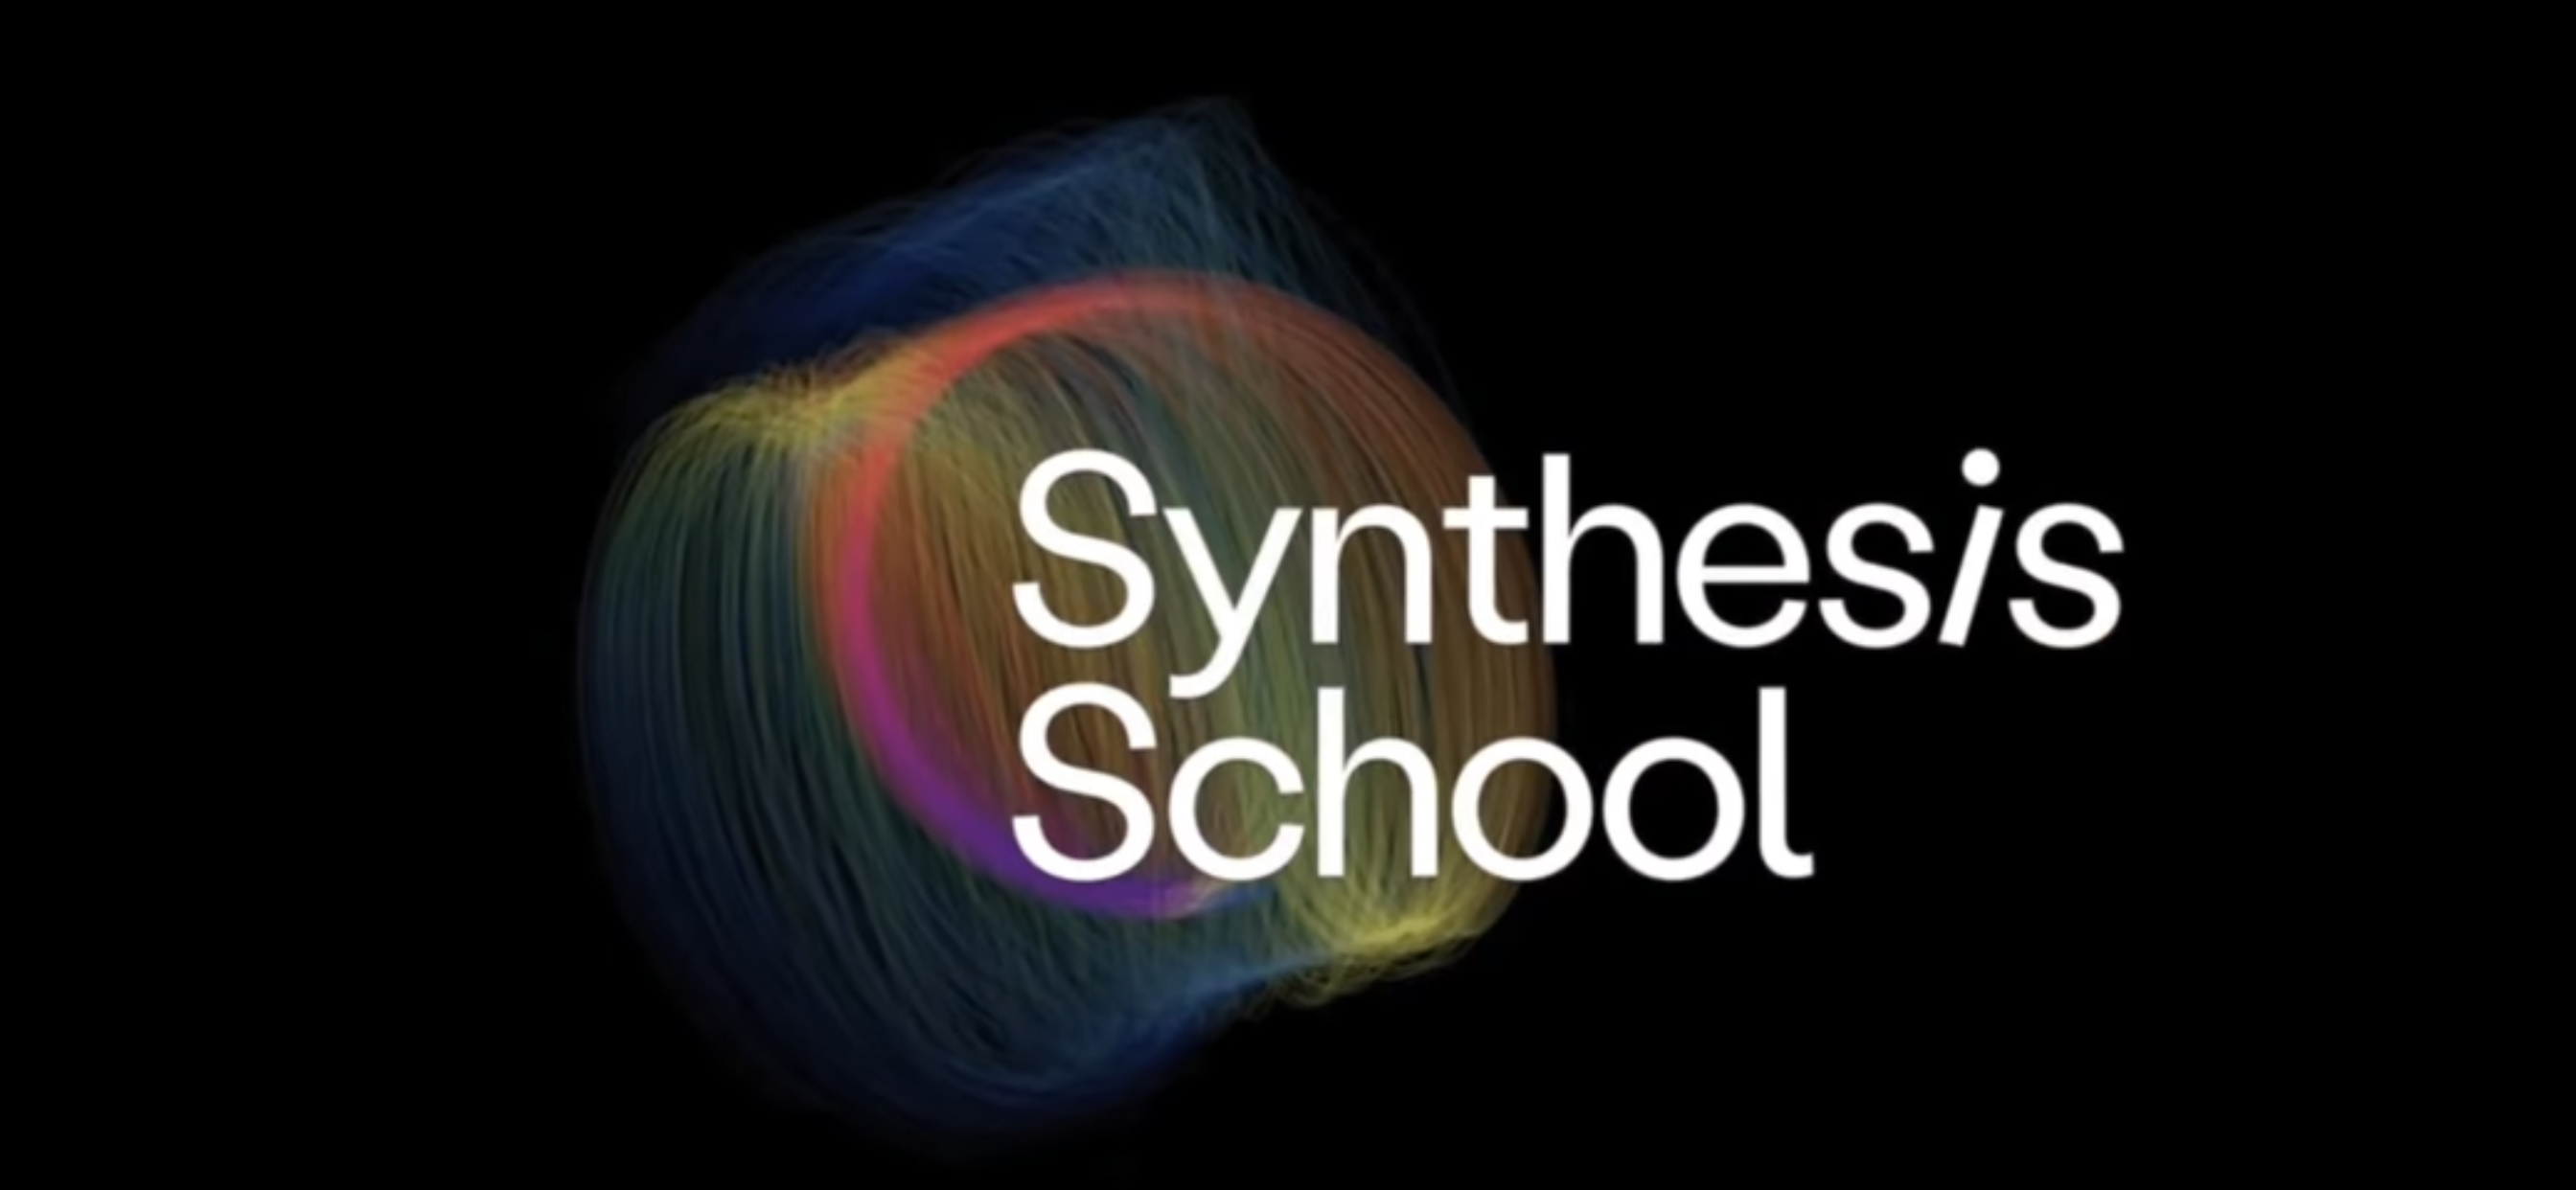 Synthesis School, Astra Nova Elon Musk school ambitions to scale online